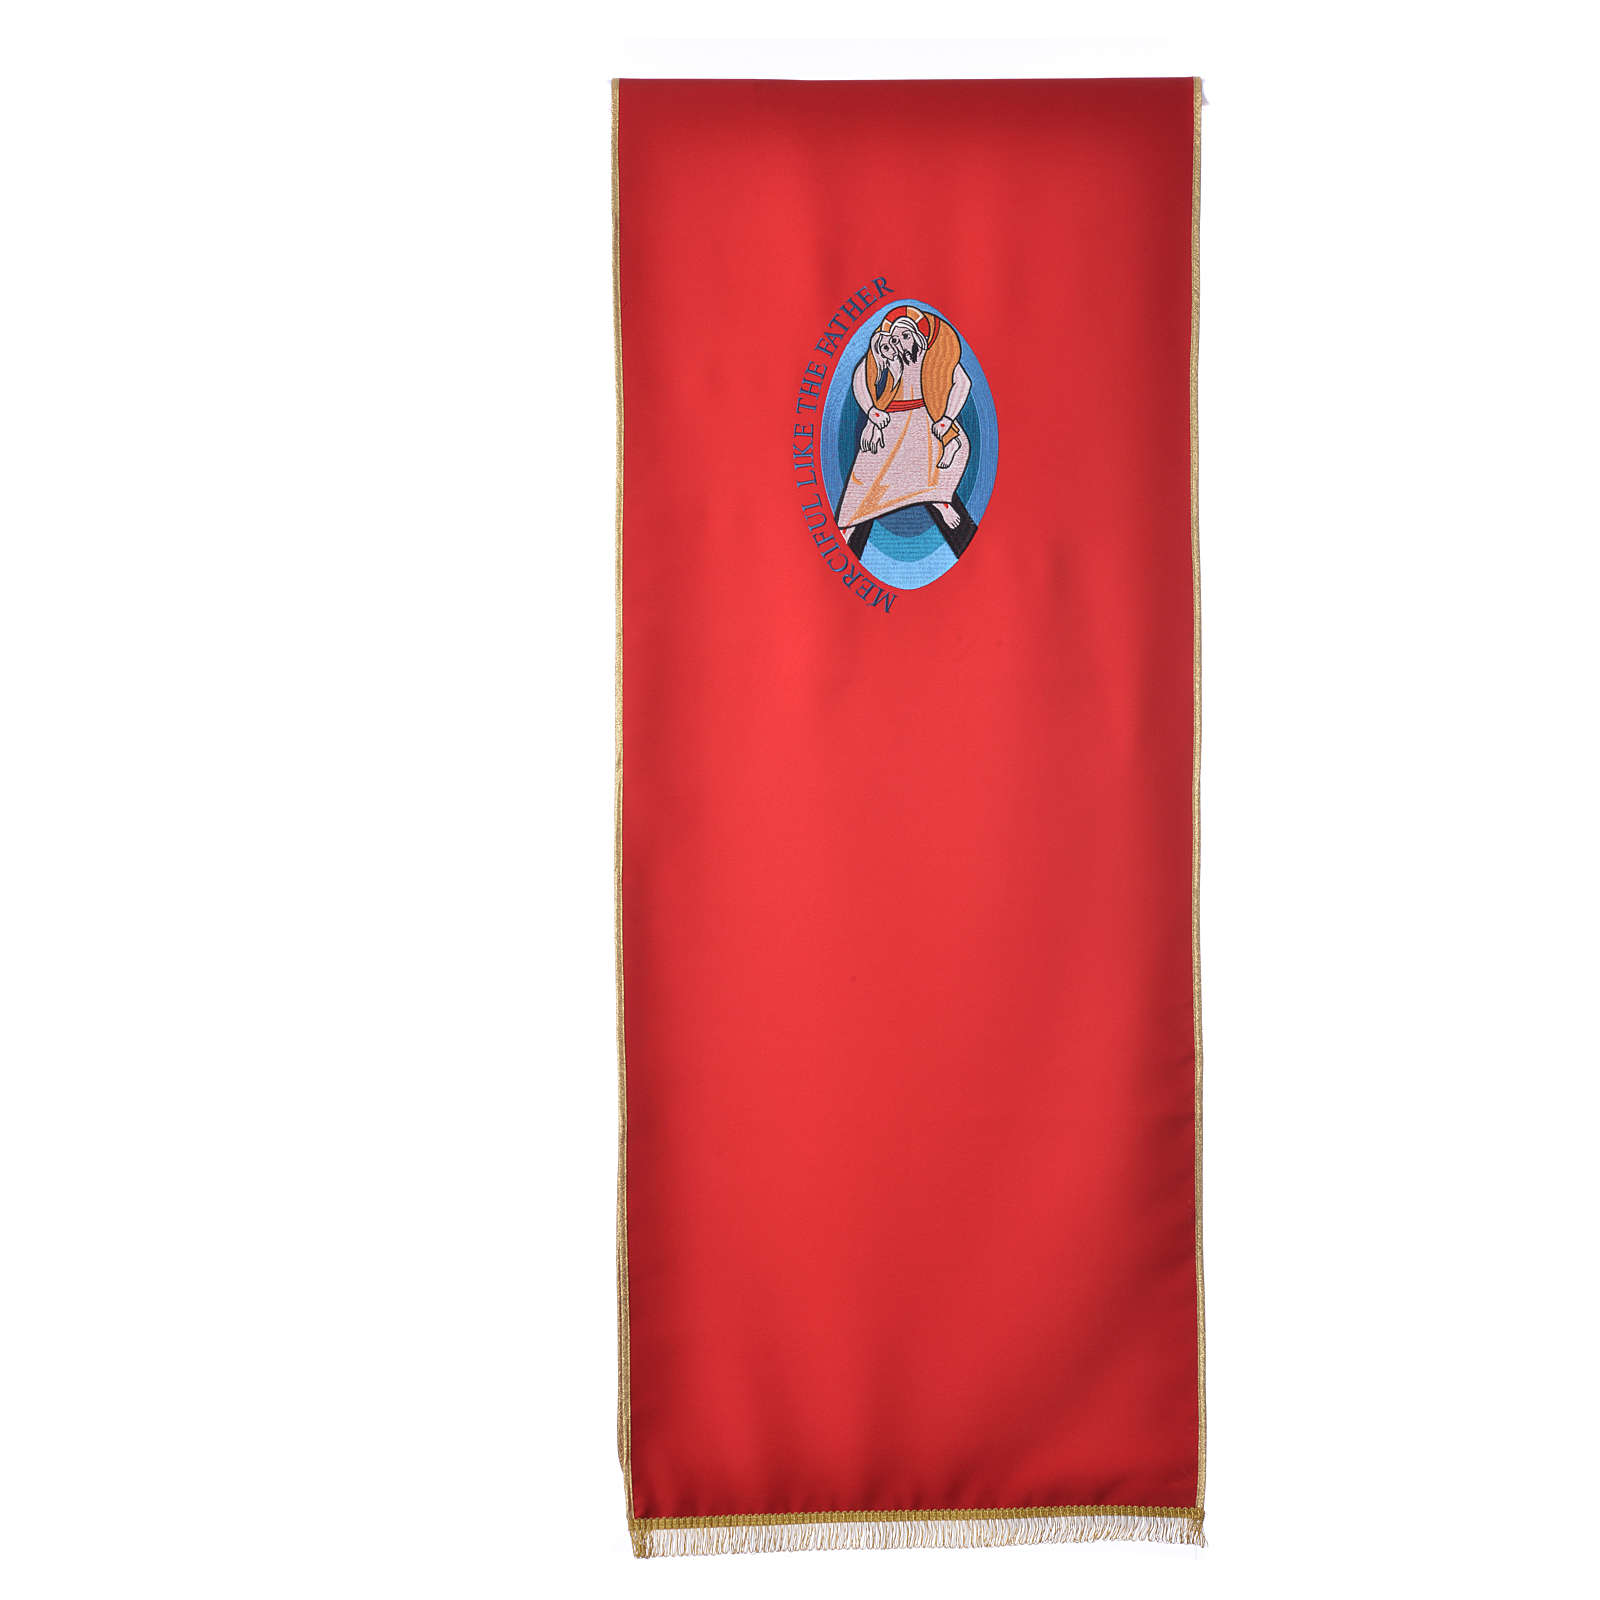 STOCK Jubilee lectern cover with ENGLISH machine embroided logo 4